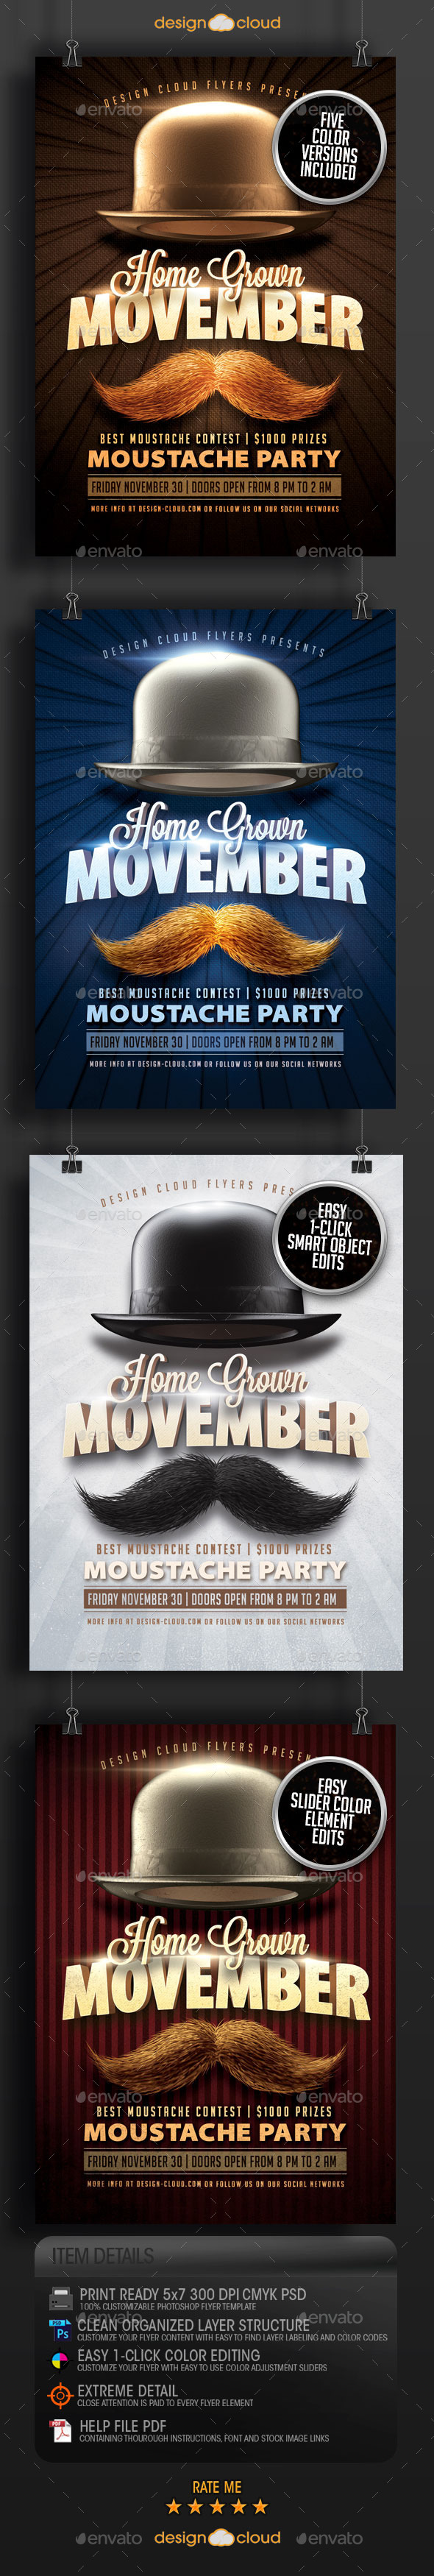 GraphicRiver Movember Home Grown Moustache Party Flyer Template 9347007